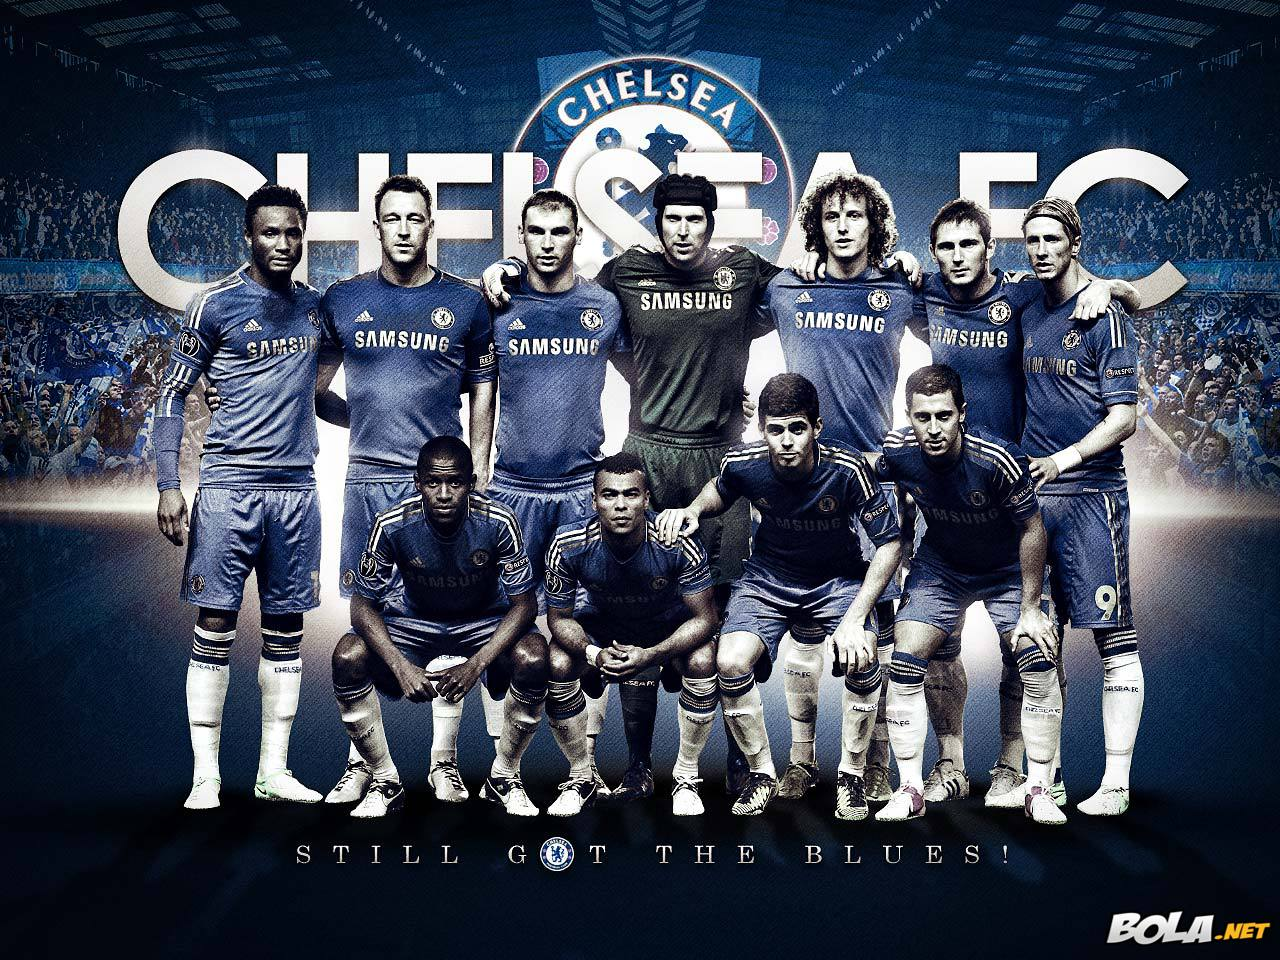 Chelsea FC Players